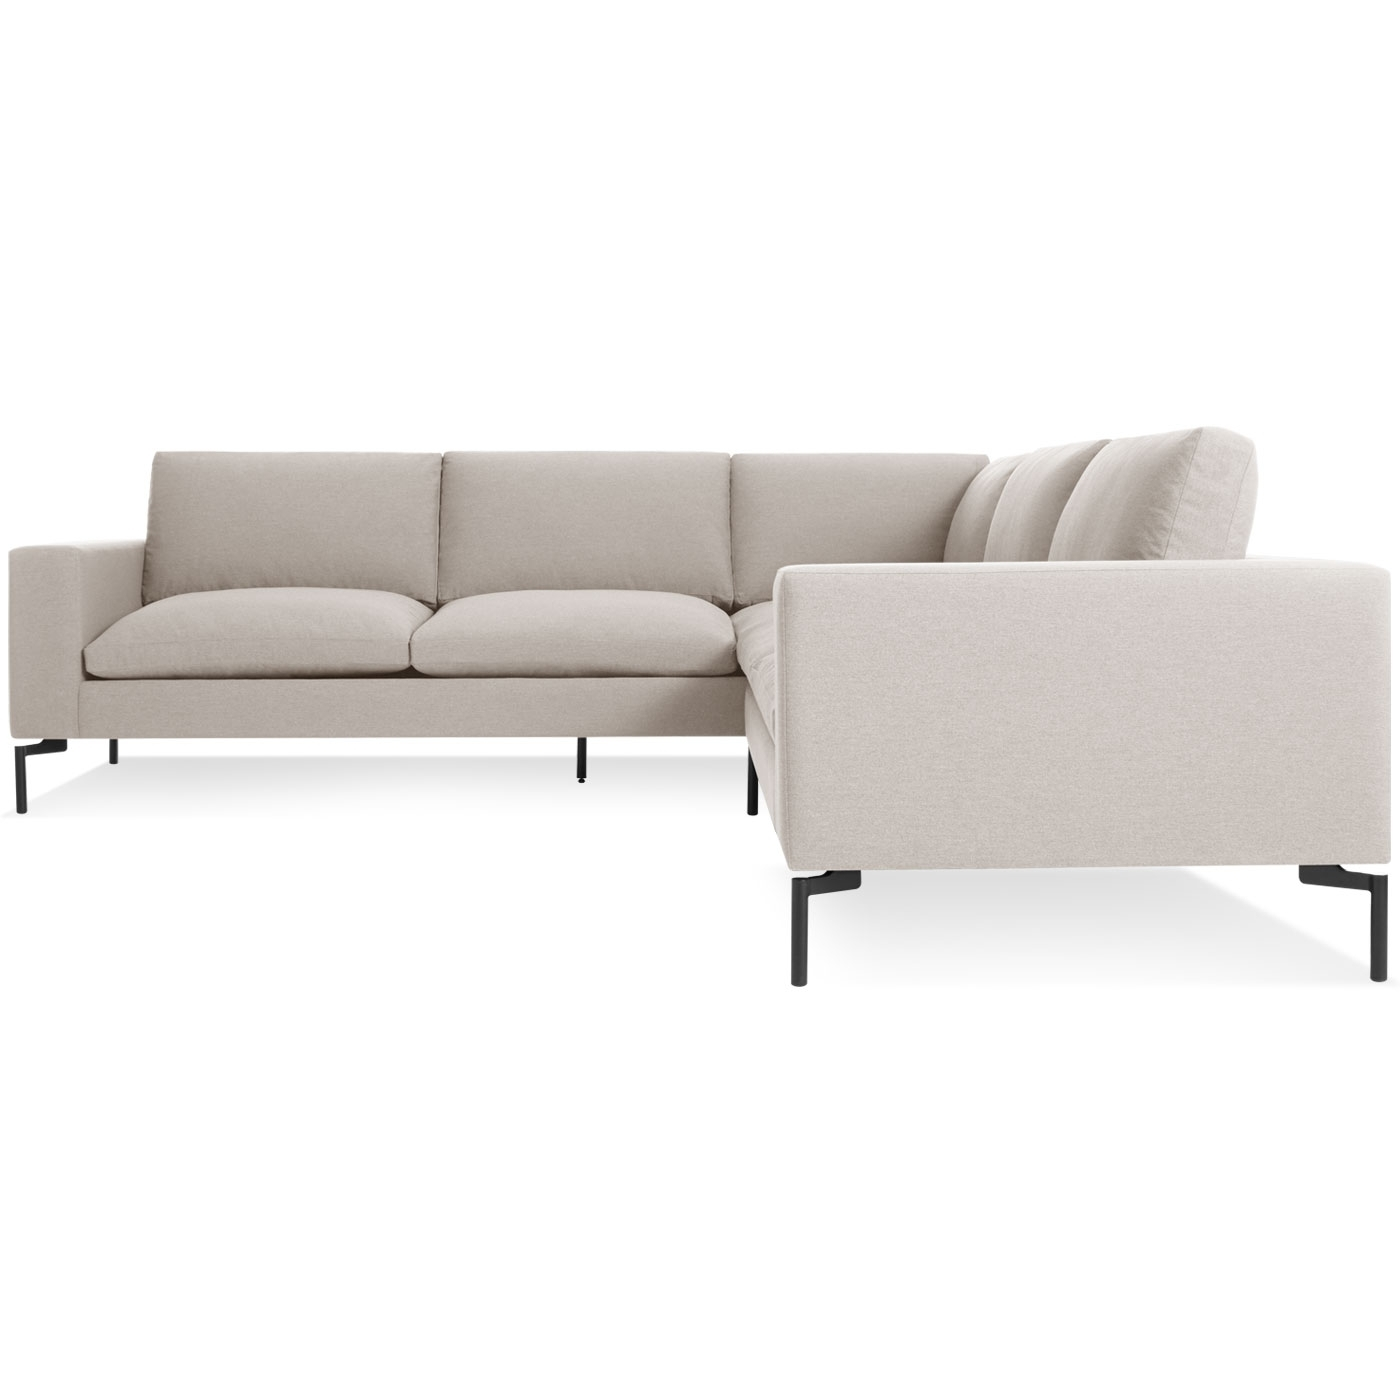 Uncategorized : L Sofa With Trendy New Standard Small Sectional Sofa In Sectional Sofas In Philippines (View 2 of 10)